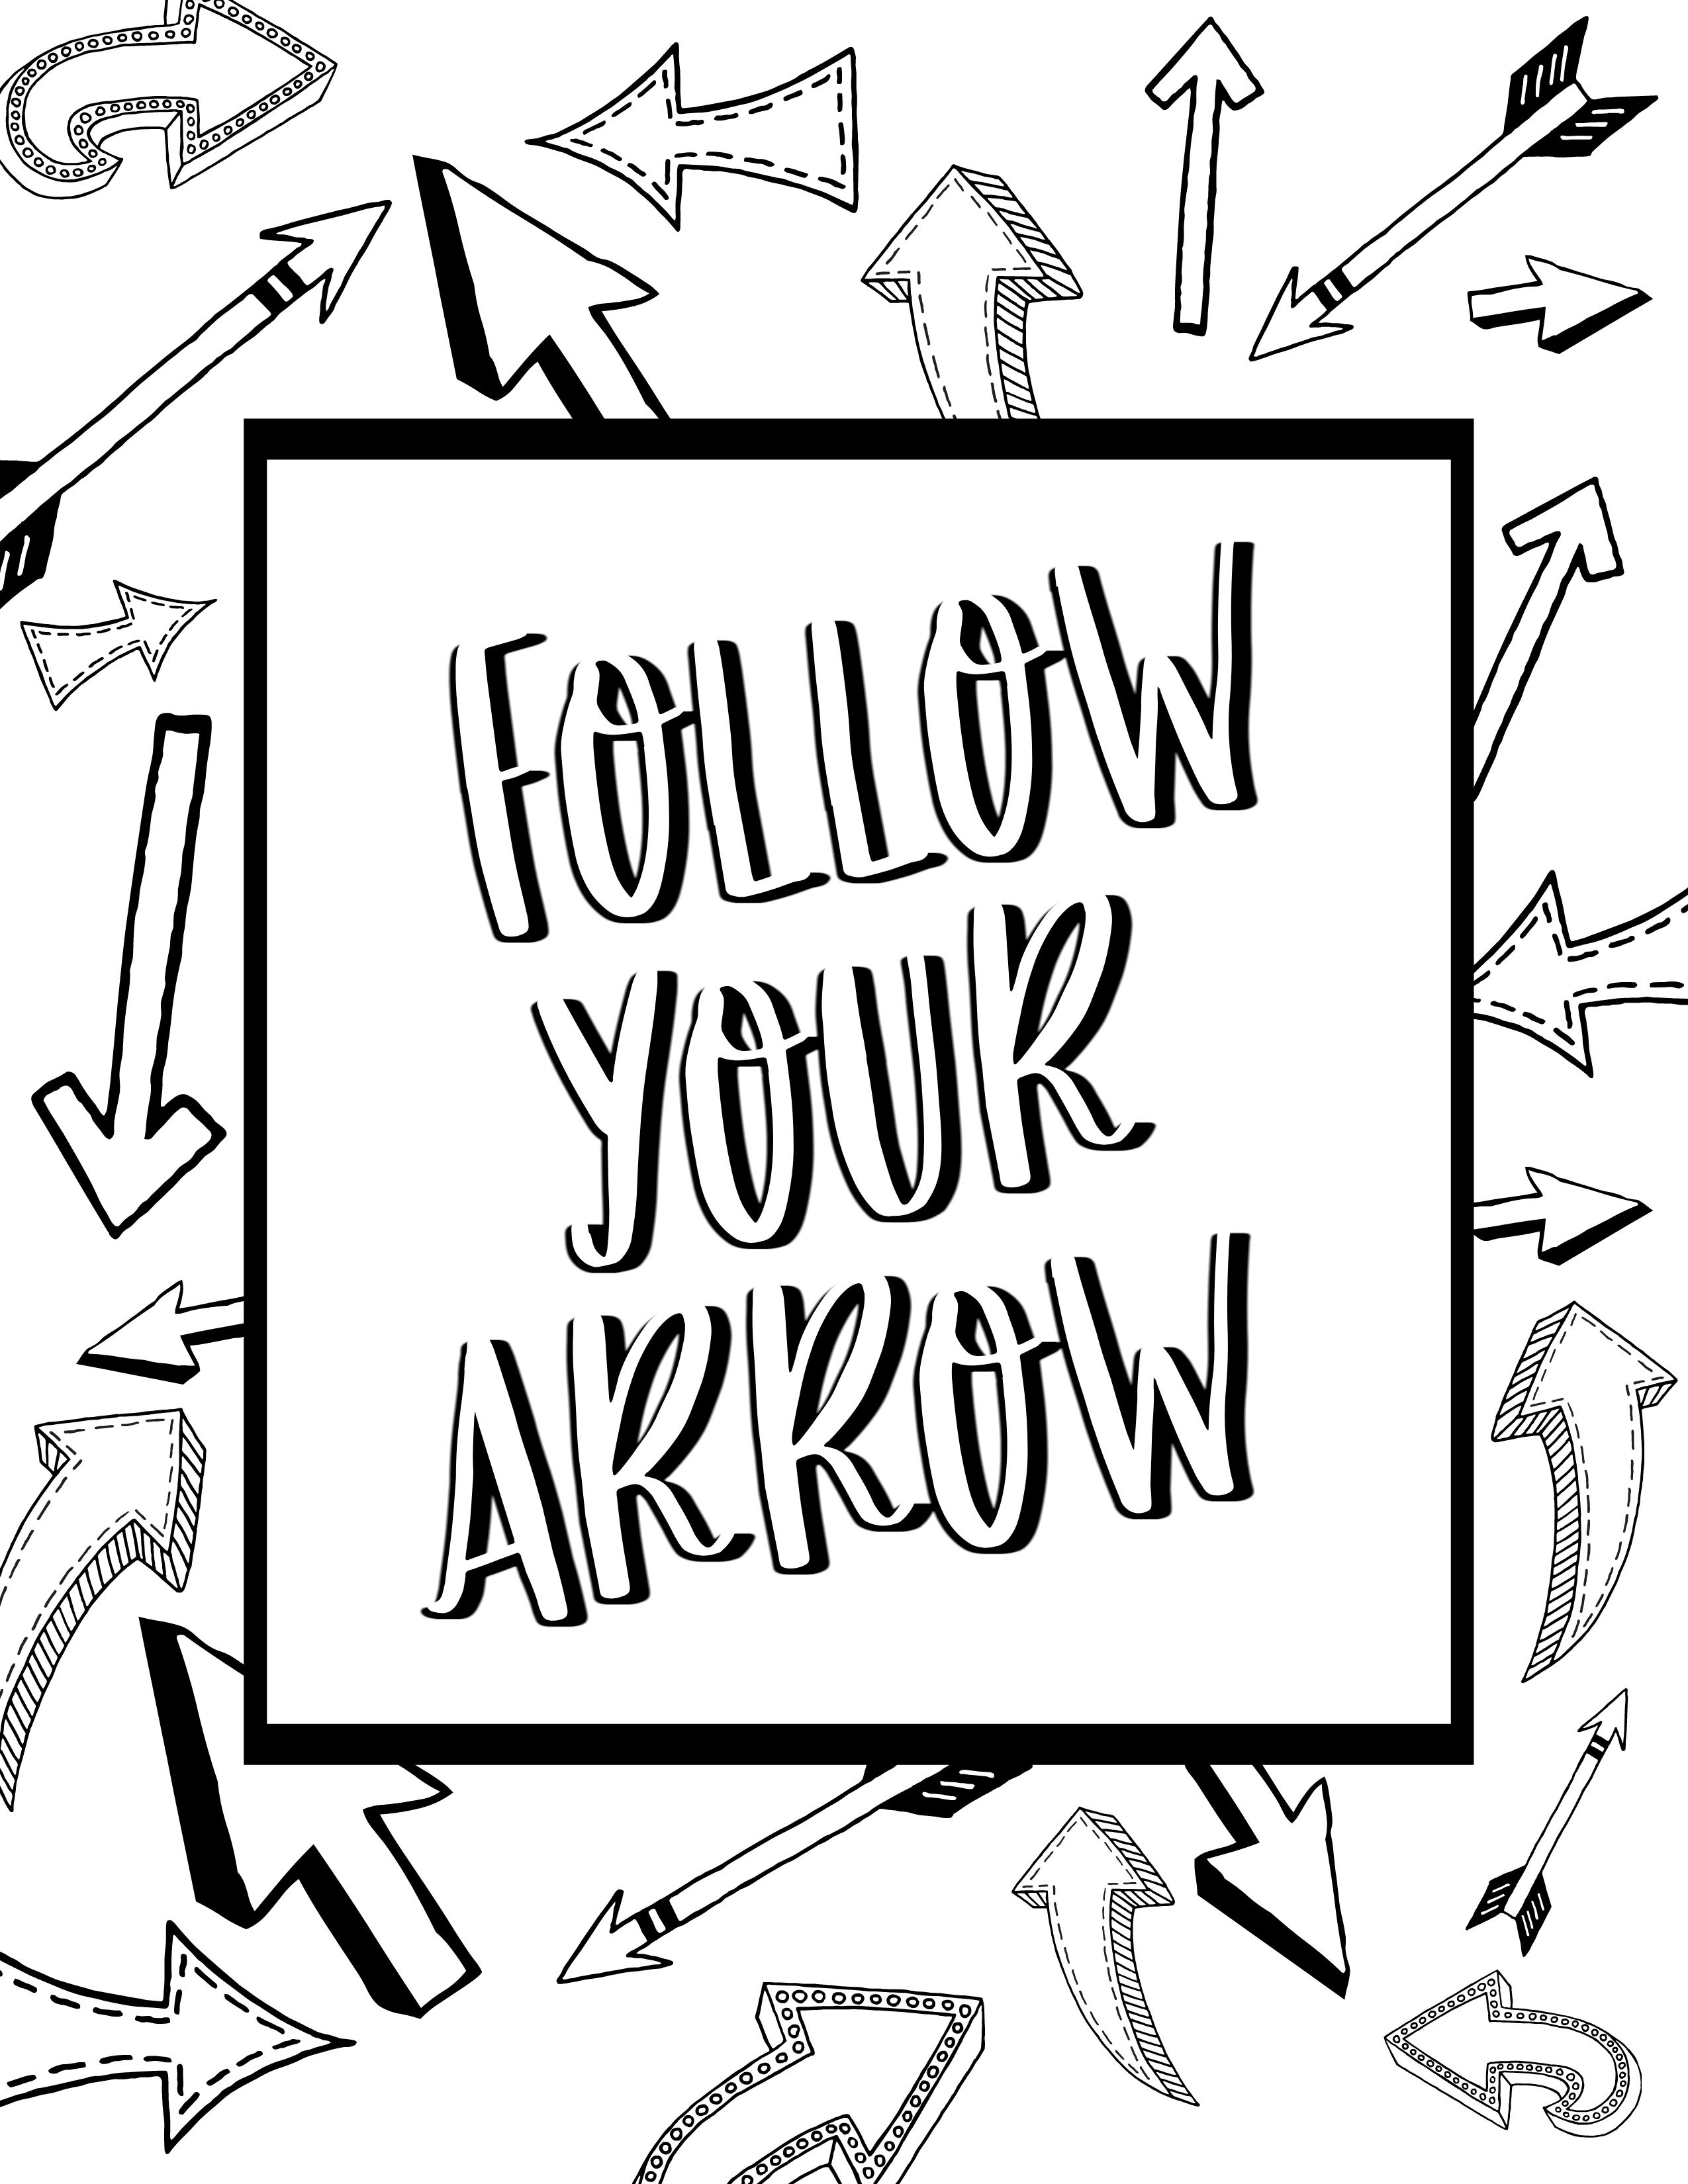 Follow your arrow coloring page! Find free adult coloring